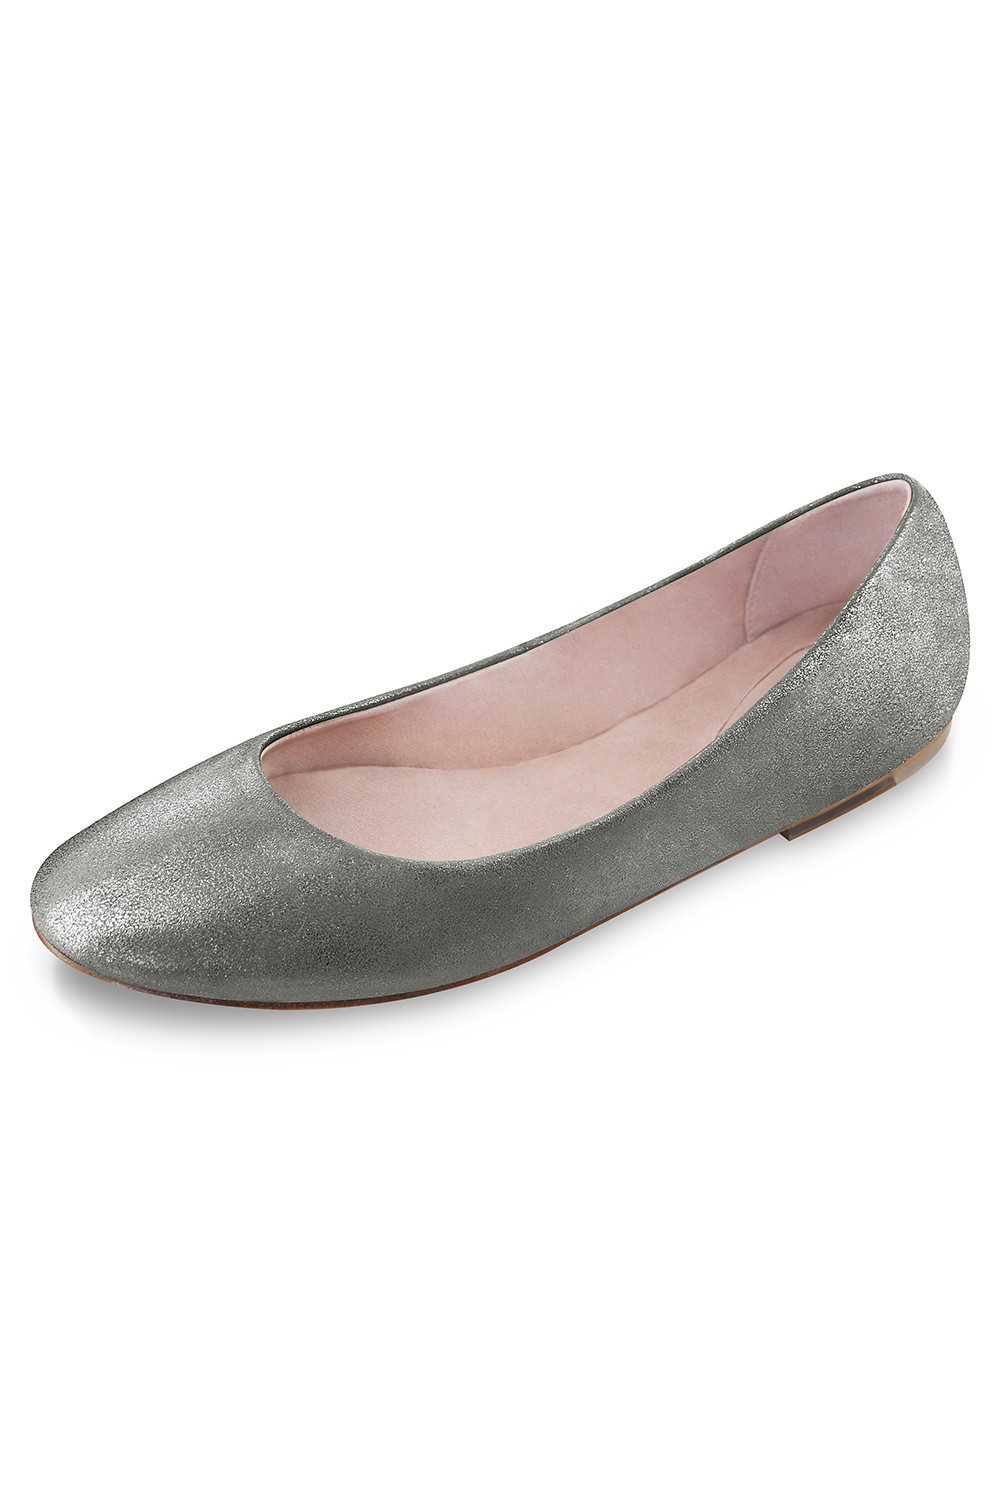 Jenna Ladies Ballet Flat Womens Fashion Shoes